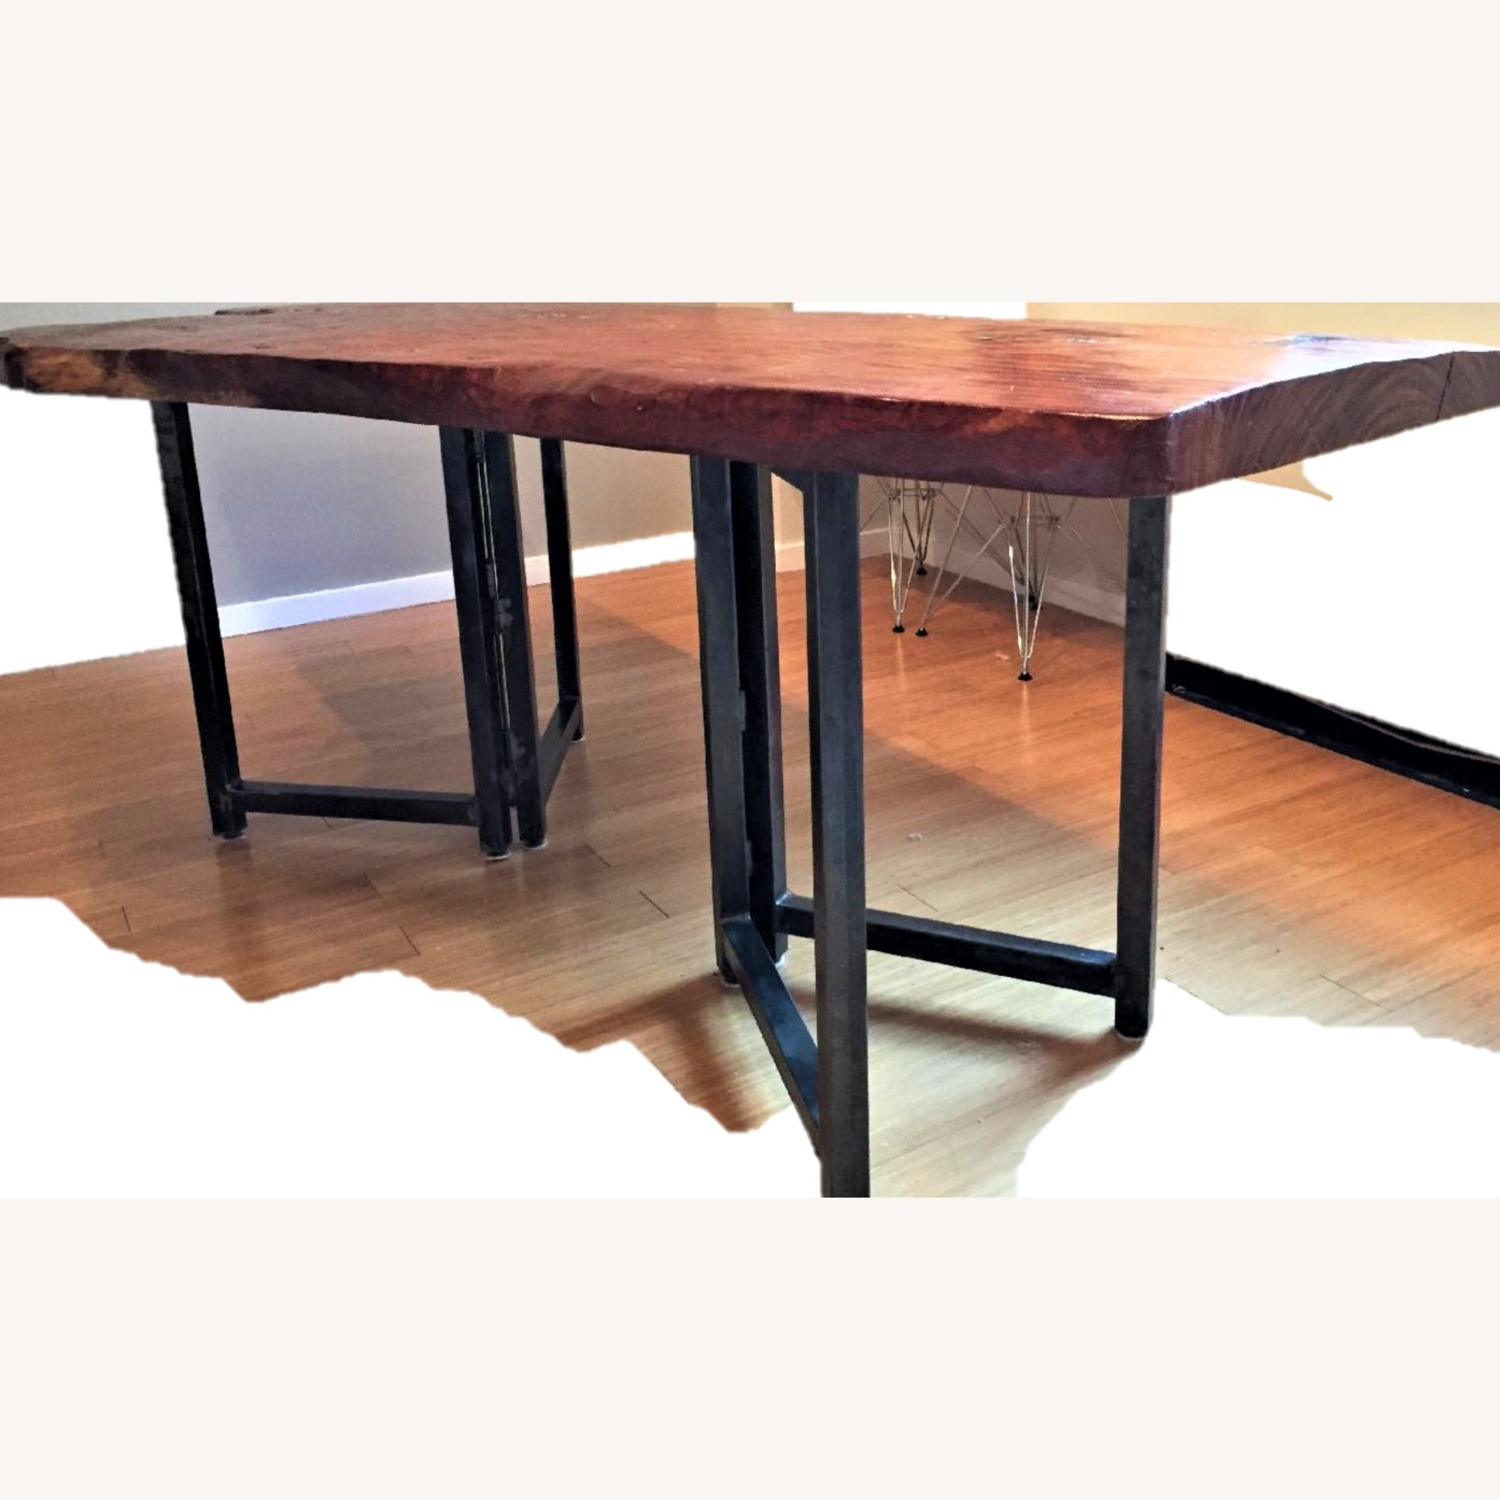 From The Source Hand-Crafted Teak Slab Dining Table - image-13